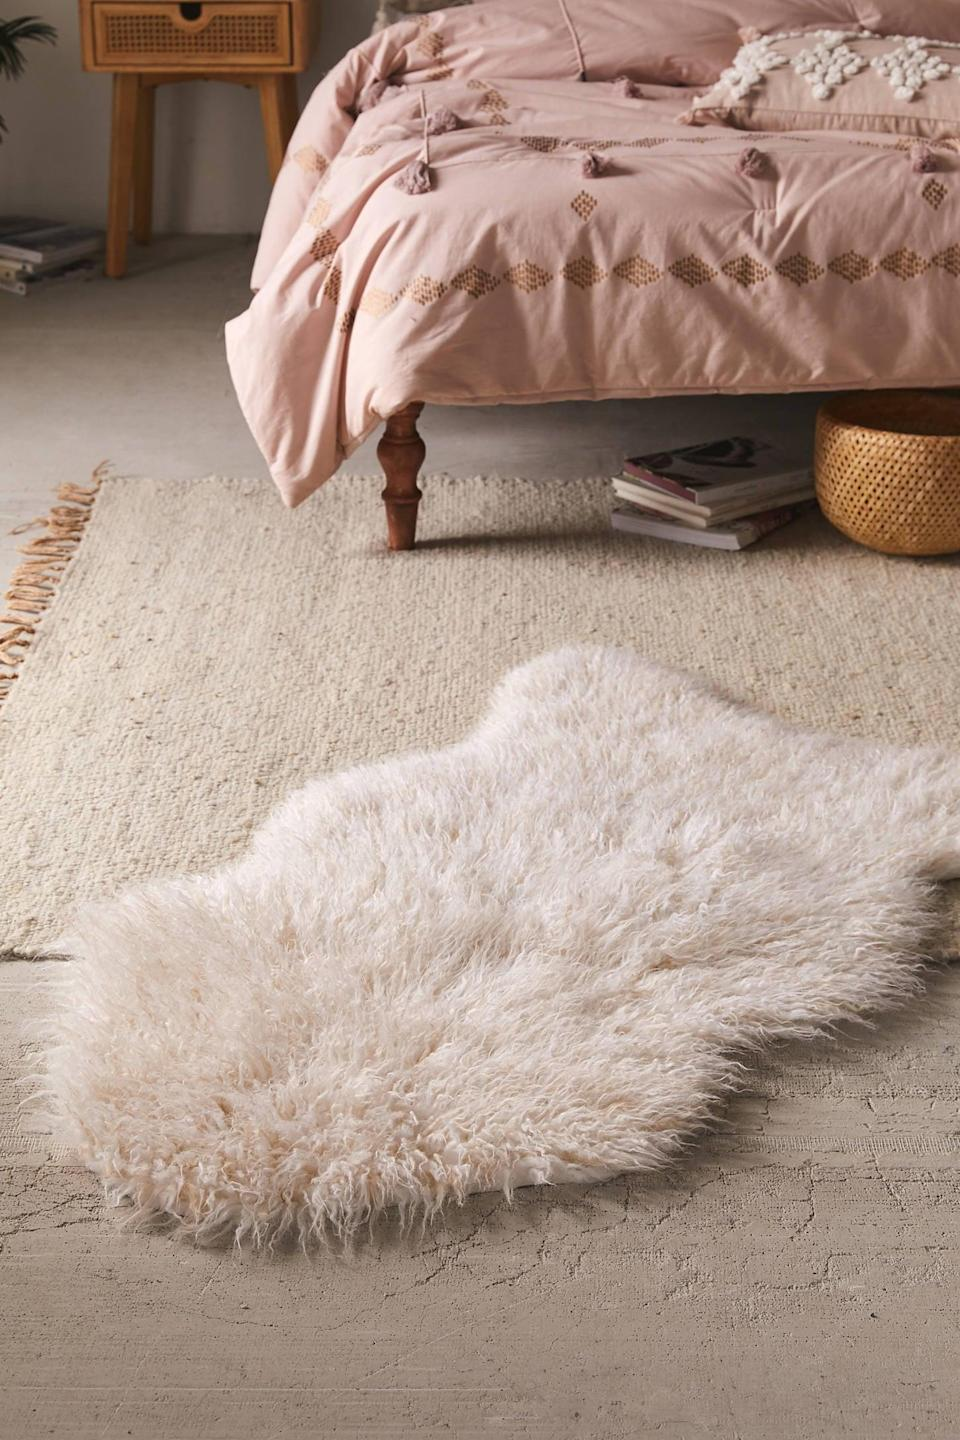 """<p>This <a href=""""https://www.popsugar.com/buy/Mazzy-Faux-Fur-Shaped-Rug-546166?p_name=Mazzy%20Faux%20Fur%20Shaped%20Rug&retailer=urbanoutfitters.com&pid=546166&price=59&evar1=casa%3Aus&evar9=45677589&evar98=https%3A%2F%2Fwww.popsugar.com%2Fhome%2Fphoto-gallery%2F45677589%2Fimage%2F47177169%2FMazzy-Faux-Fur-Shaped-Rug&list1=shopping%2Curban%20outfitters%2Chome%20decor%2Cfurniture%2Csmall%20space%20living%2Chome%20shopping&prop13=api&pdata=1"""" class=""""link rapid-noclick-resp"""" rel=""""nofollow noopener"""" target=""""_blank"""" data-ylk=""""slk:Mazzy Faux Fur Shaped Rug"""">Mazzy Faux Fur Shaped Rug</a> ($59-$129) comes in three different sizes.</p>"""